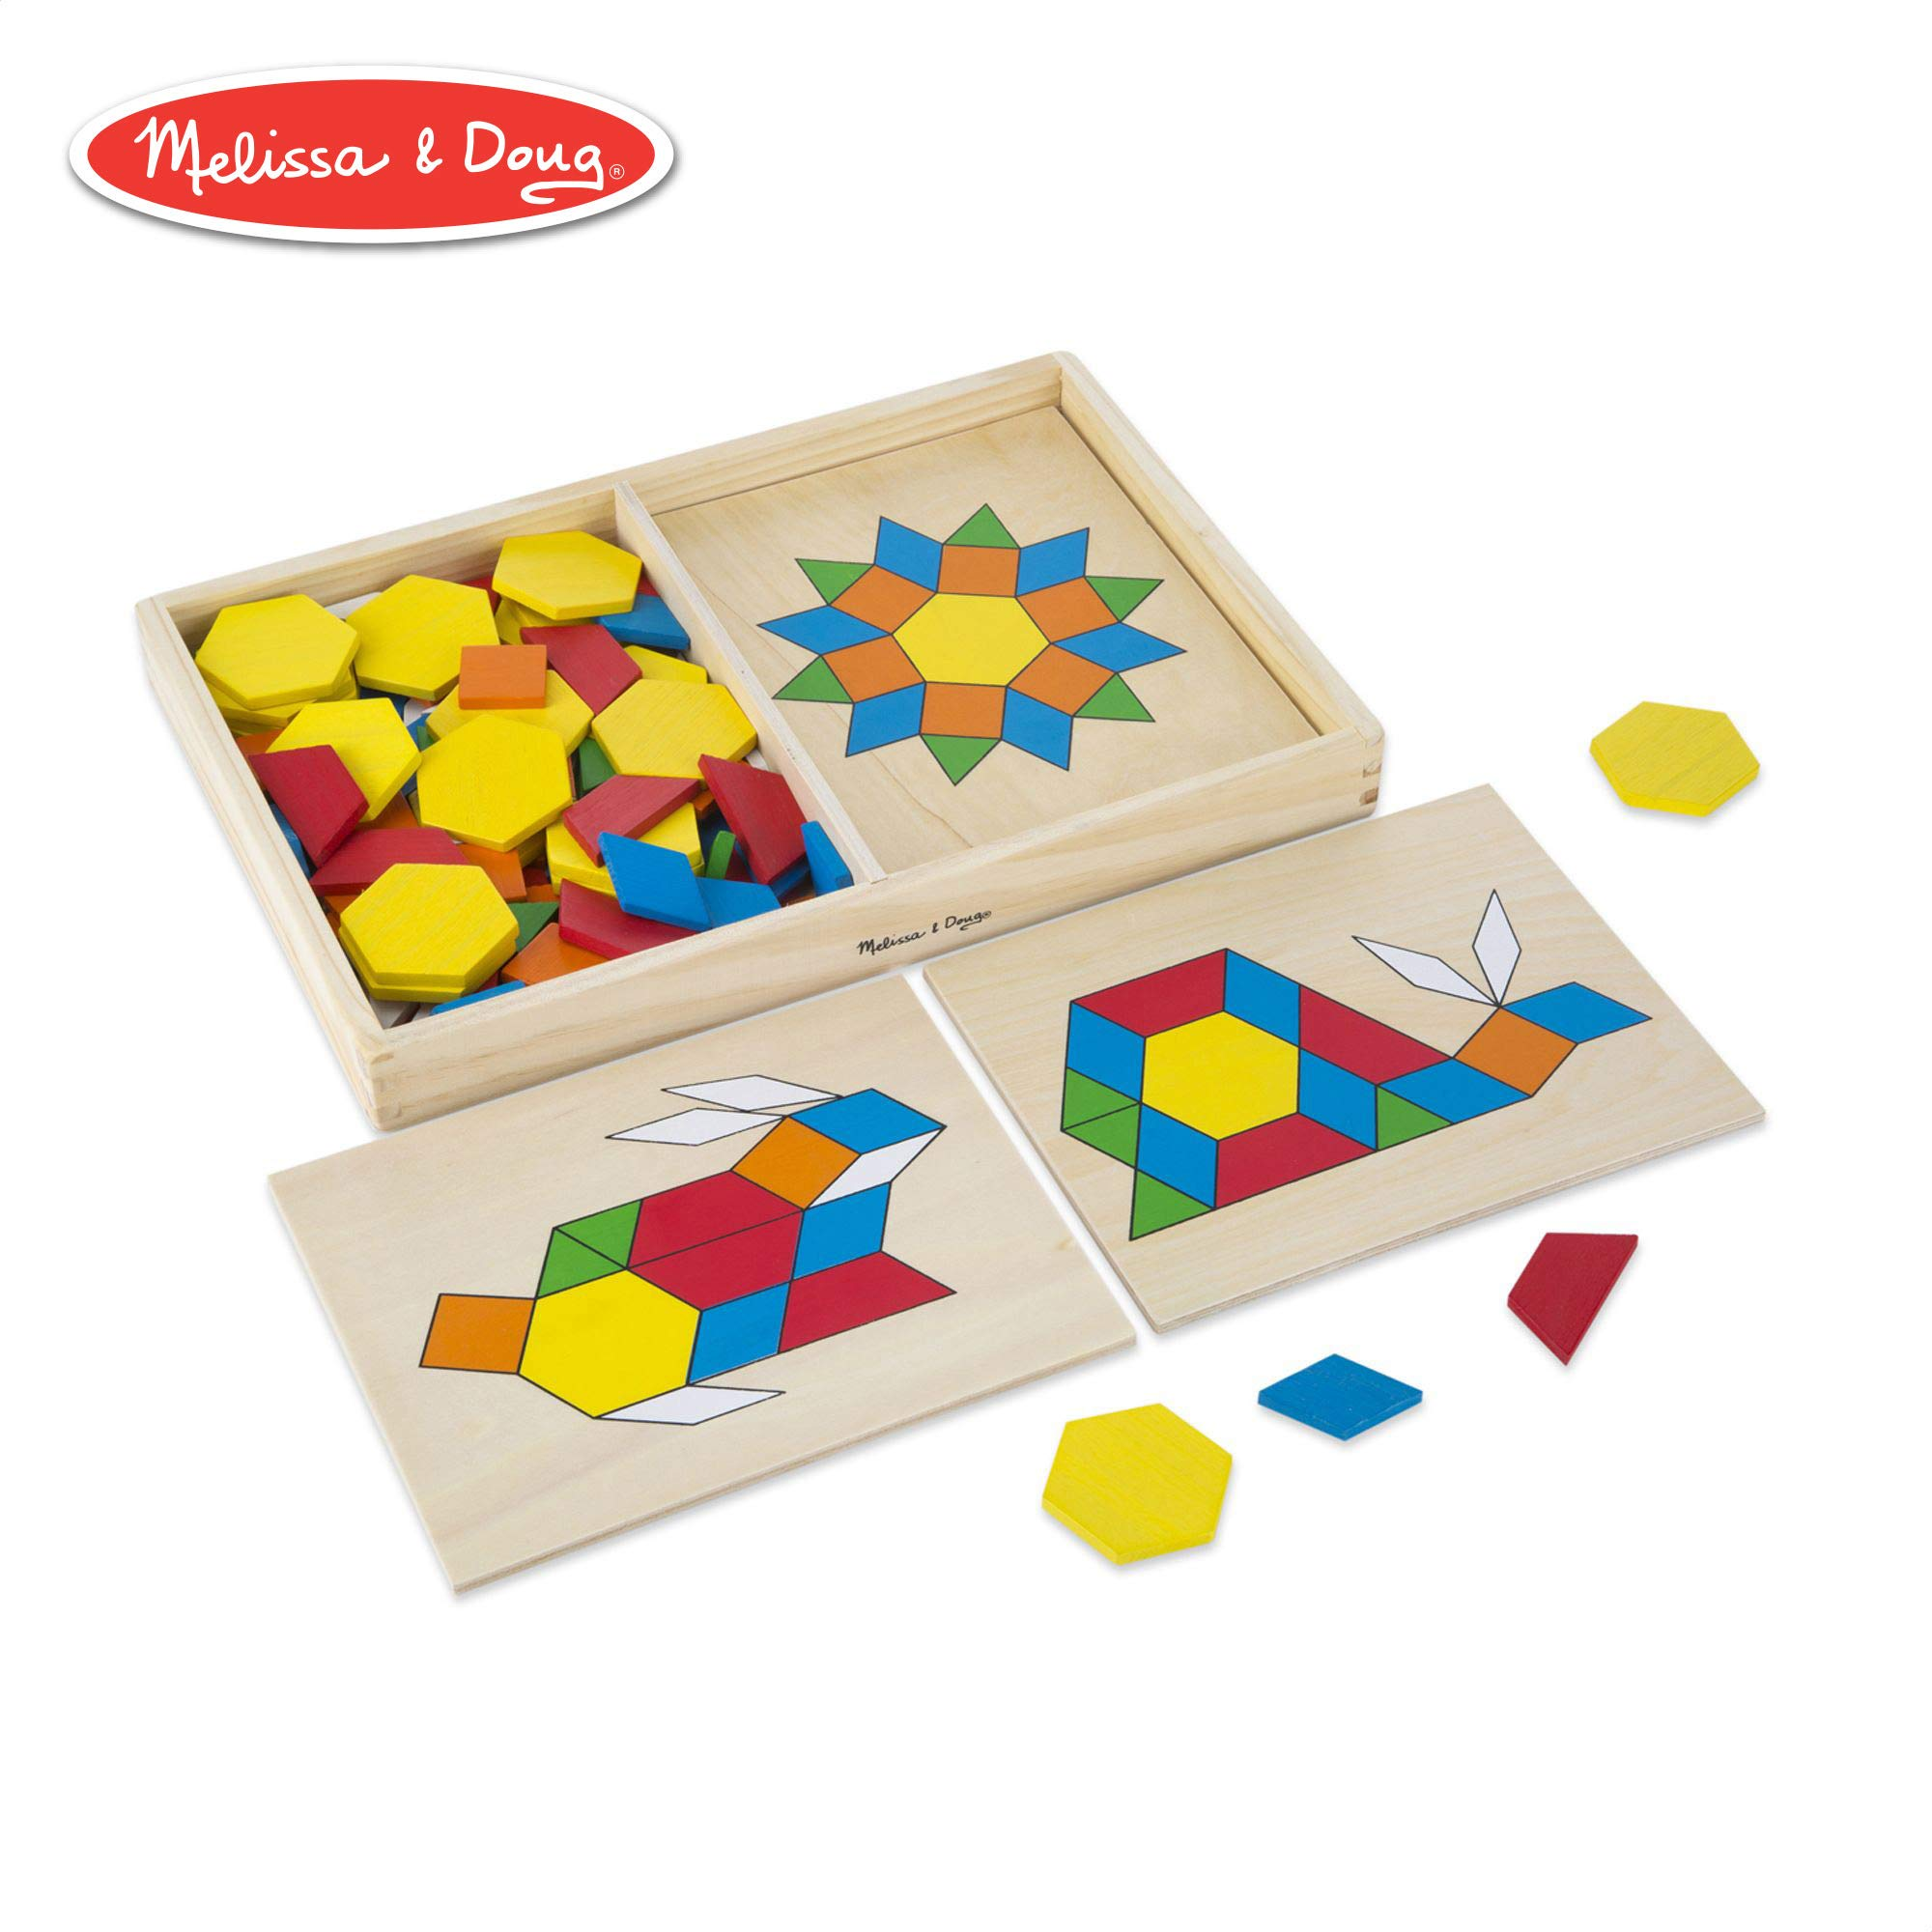 Melissa & Doug Pattern Blocks and Boards Classic Toy (Developmental Toy, Wooden Shape Blocks, Double-Sided Boards, 120 Shapes & 5 Boards) by Melissa & Doug